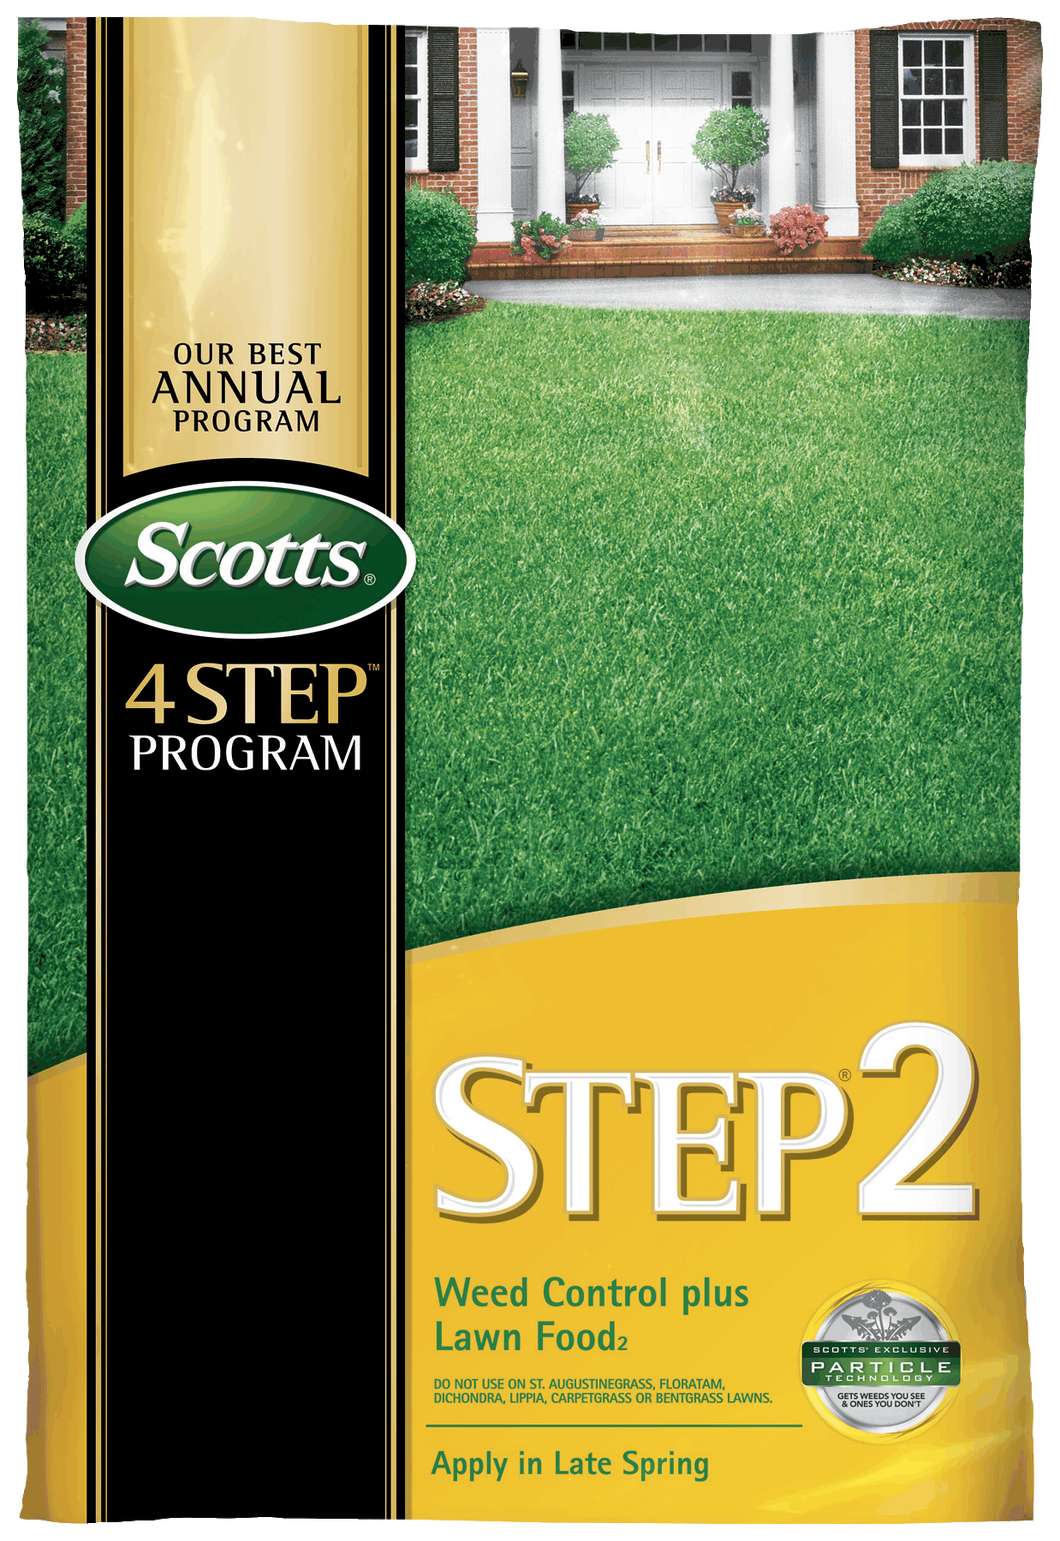 Scotts Lawn Care - Step 2 Weed Control Plus Lawn Food